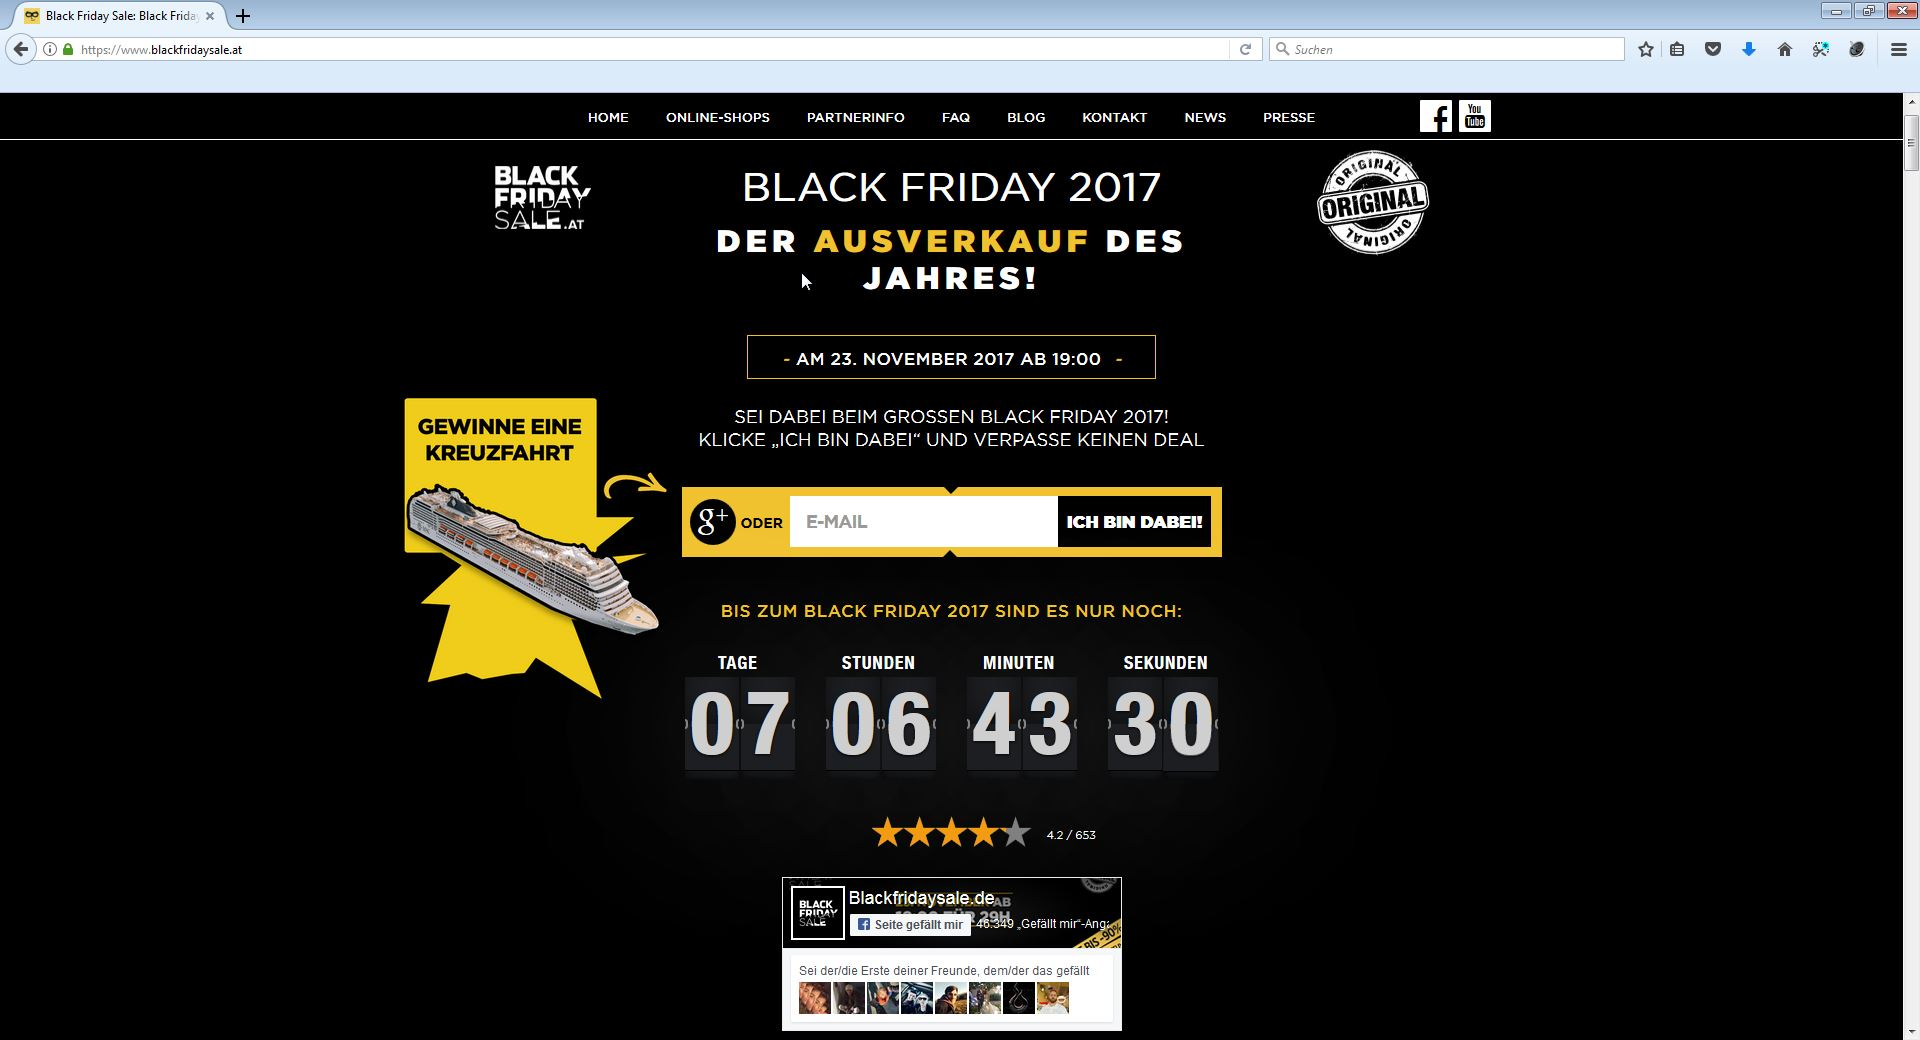 Black-Friday-Sale-Black-Friday-2017-in-sterreich